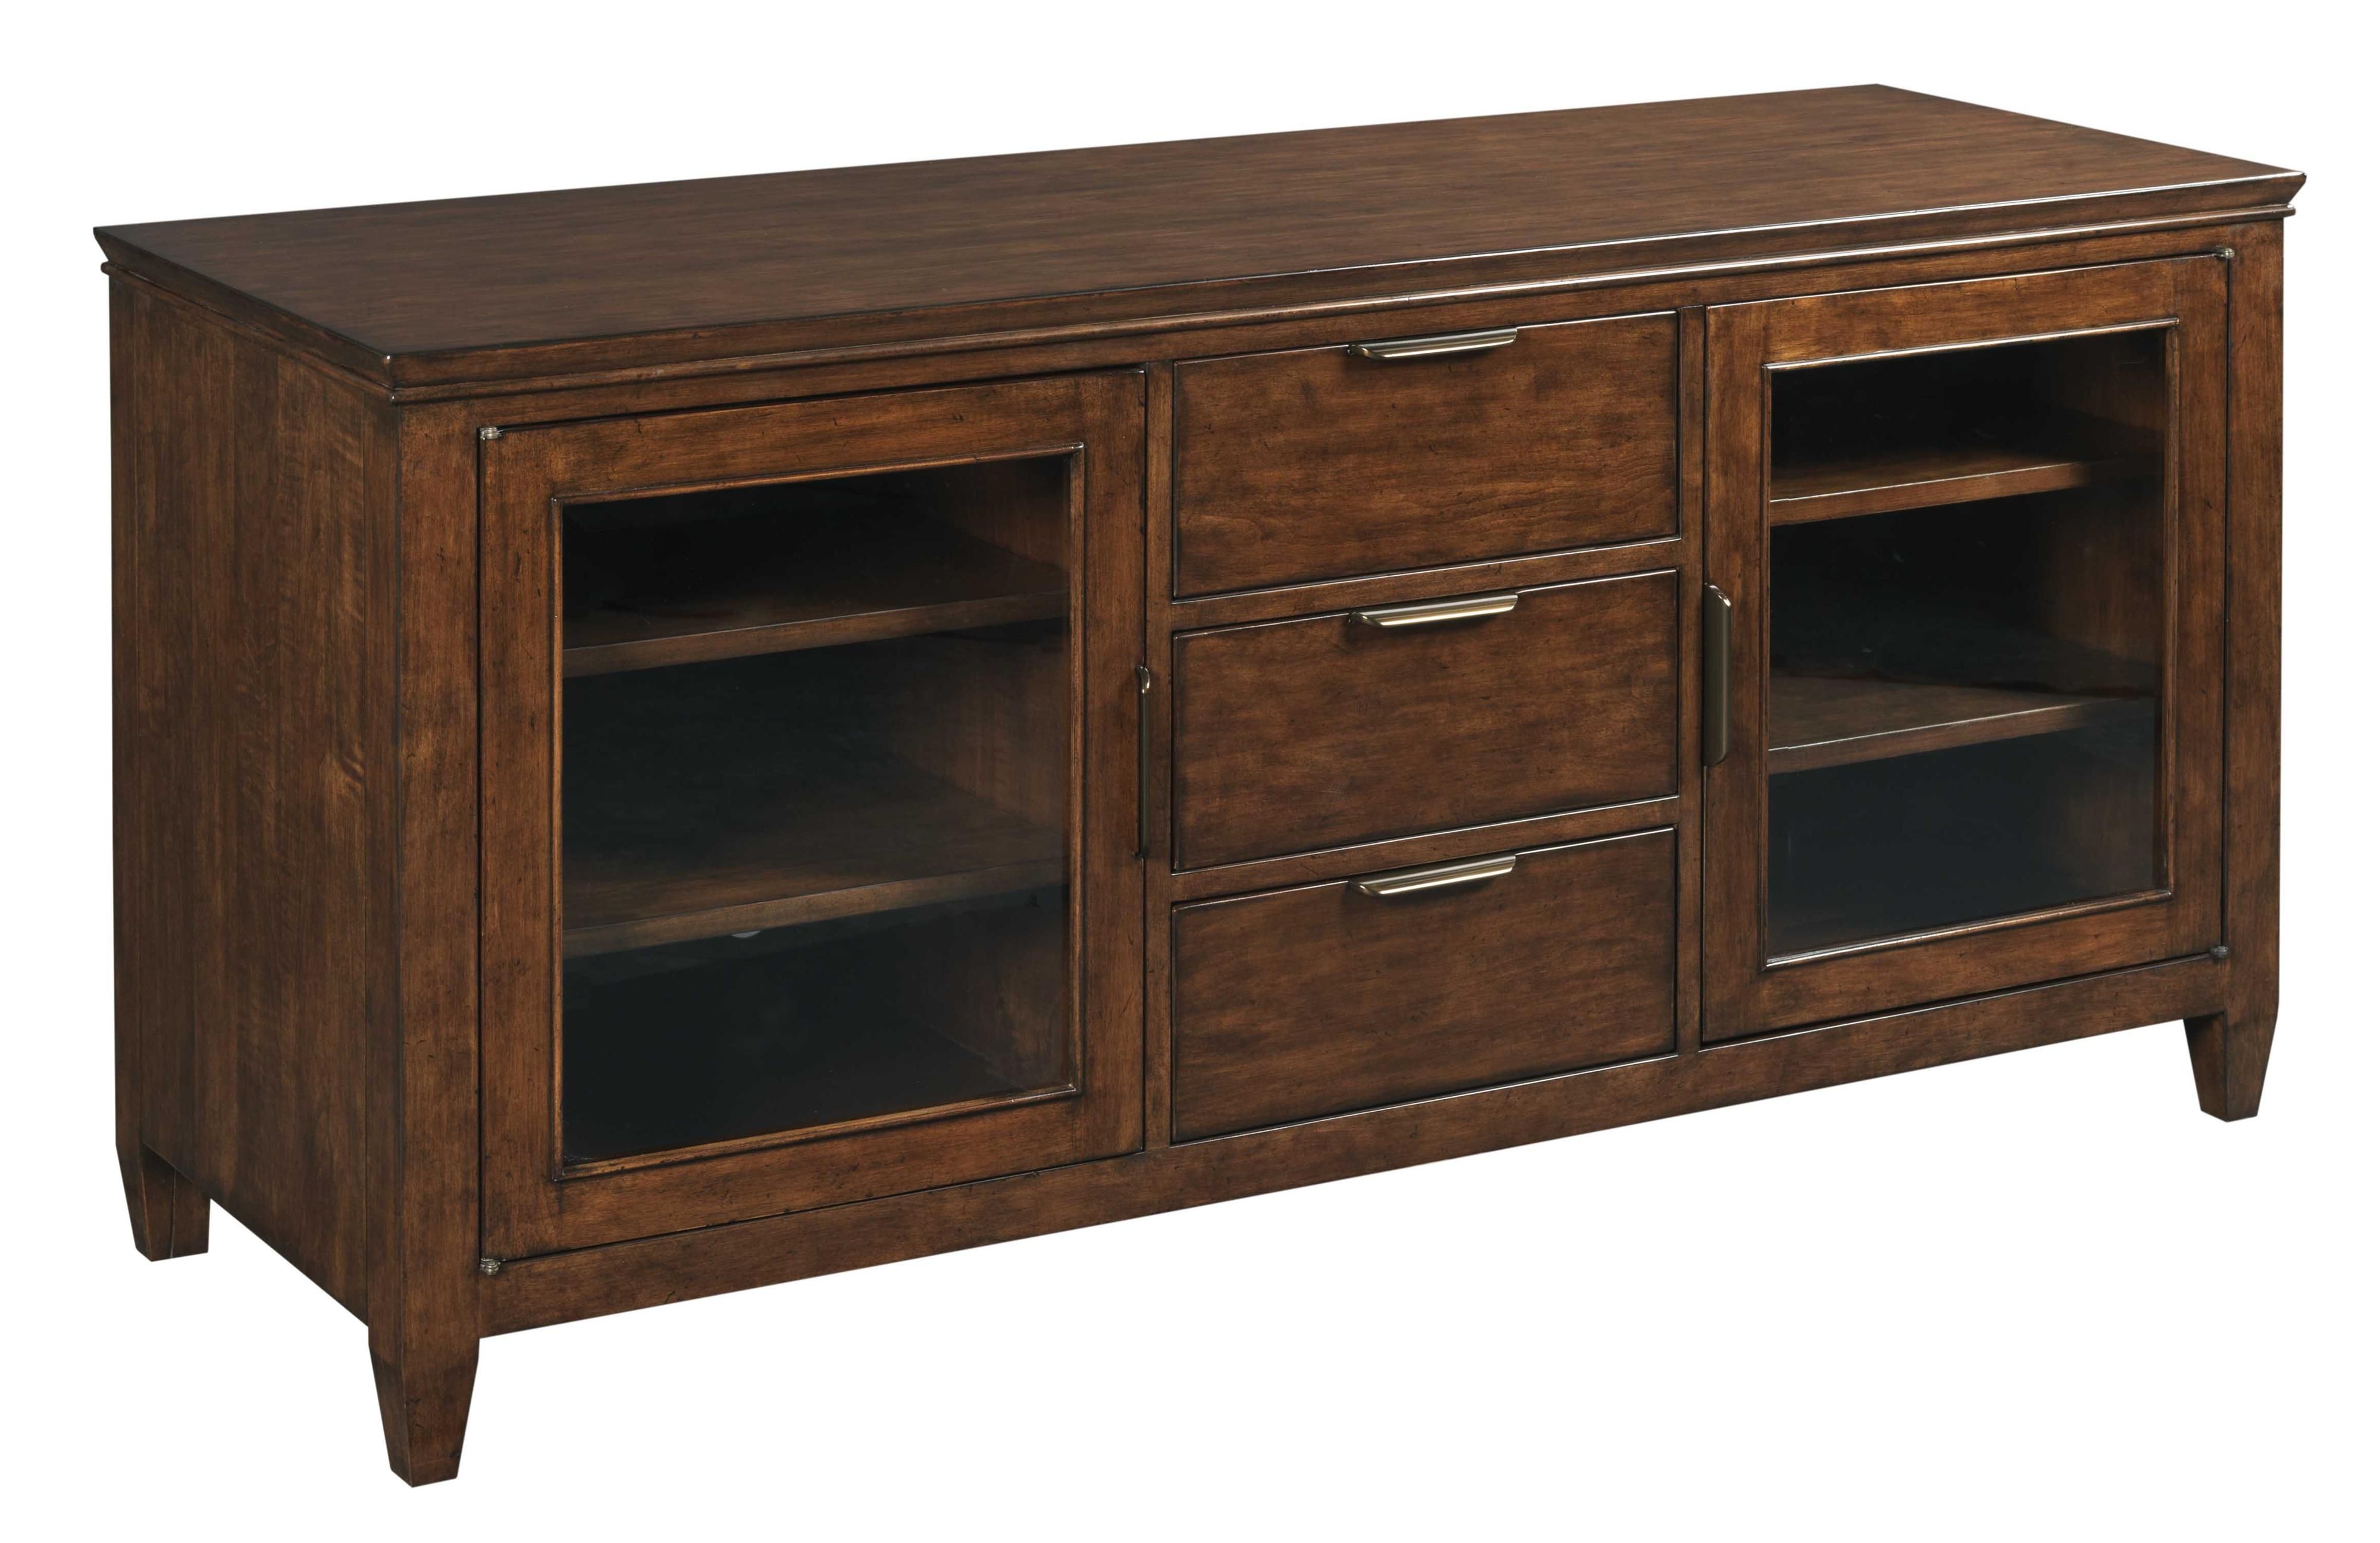 "Kincaid Furniture Elise Accord 58"" Console - Item Number: 77-035"